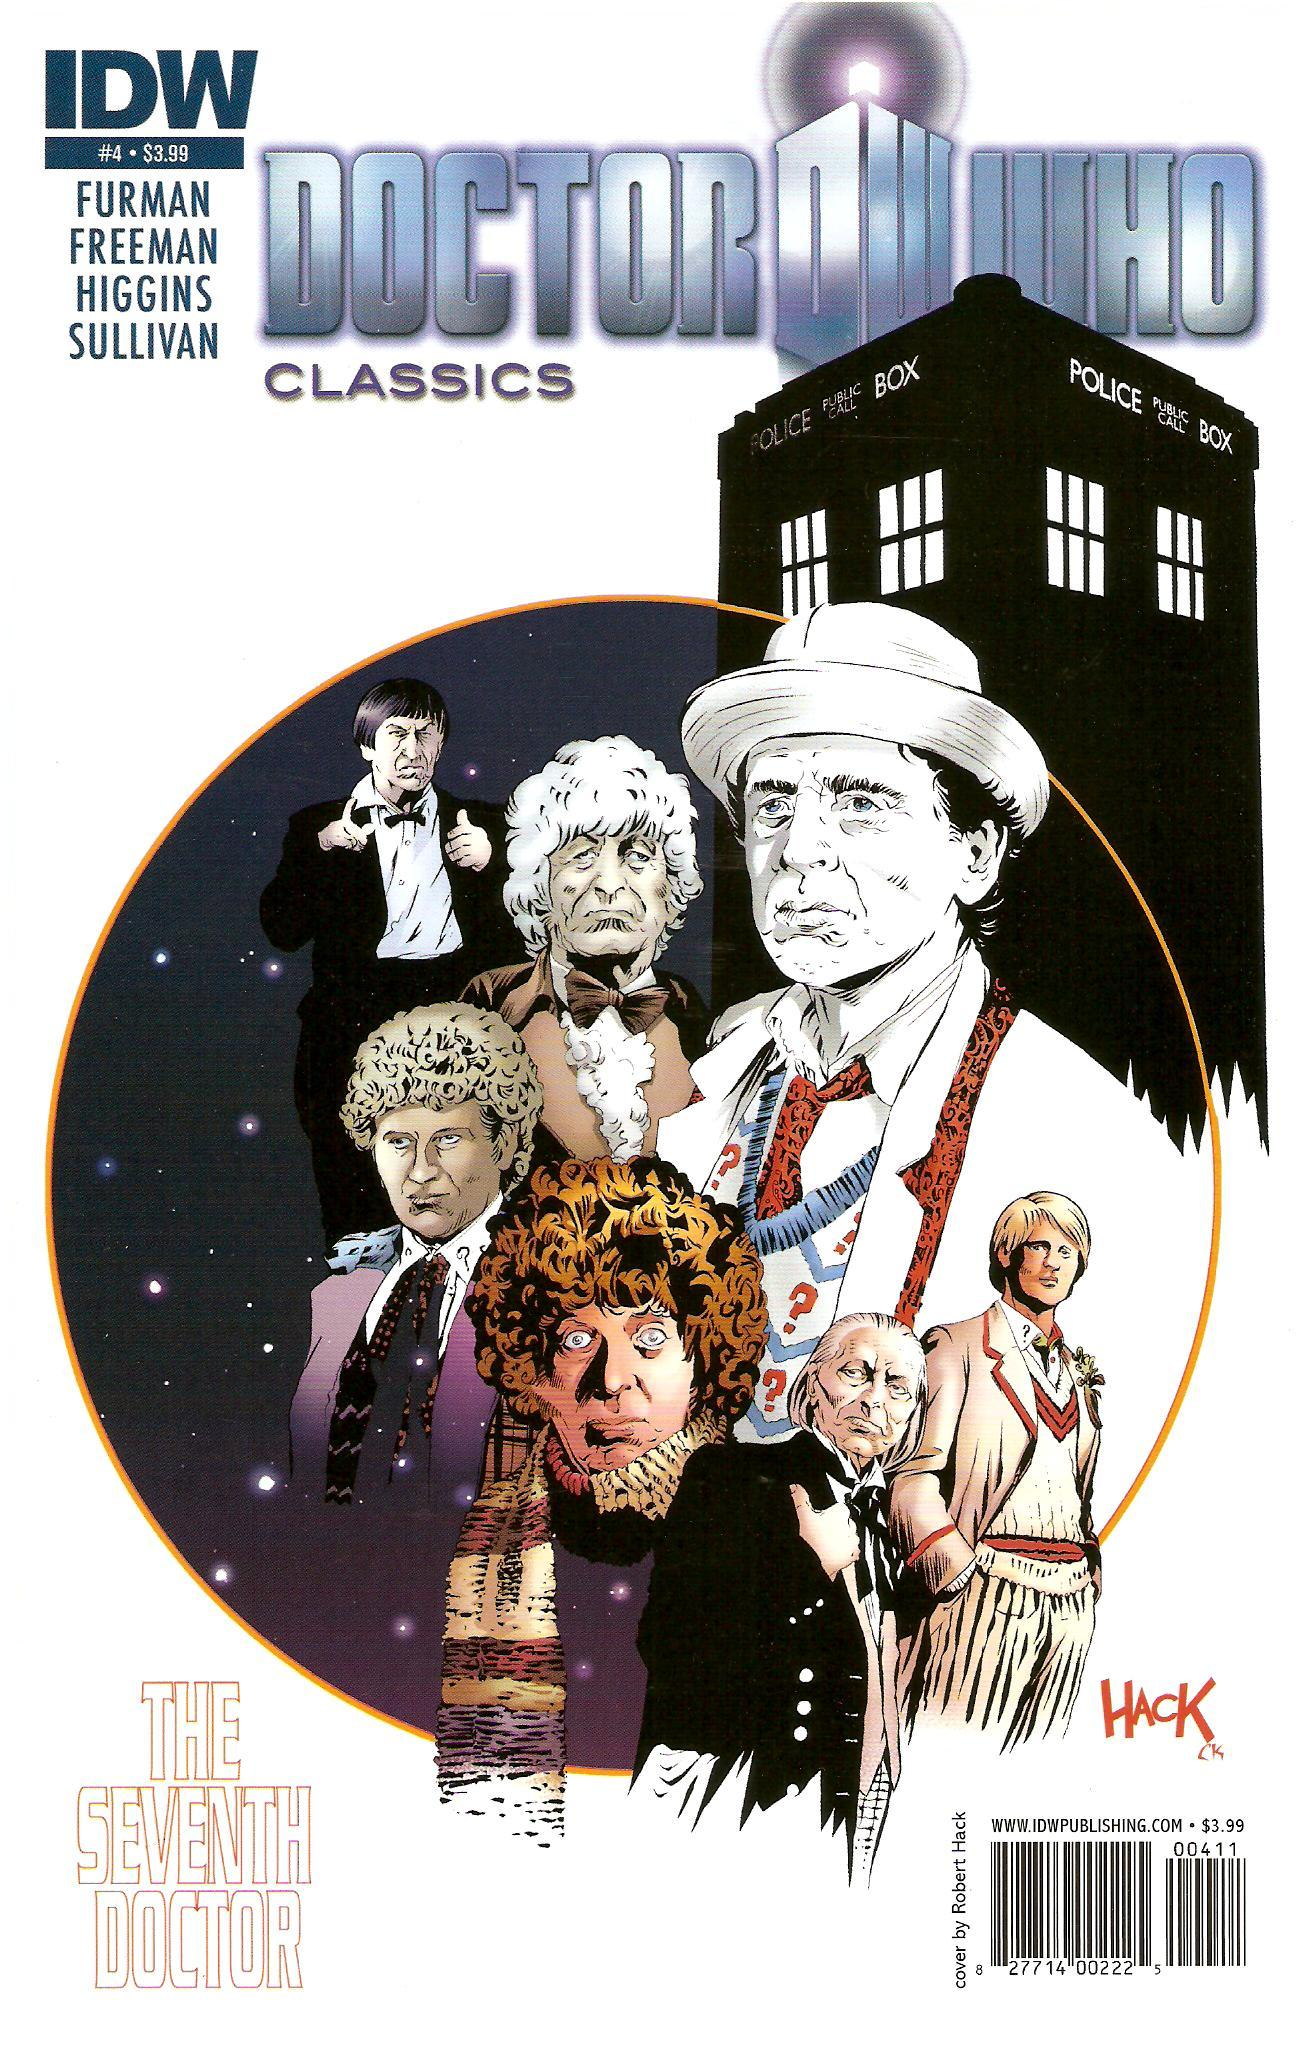 Classics seventh doctor 4